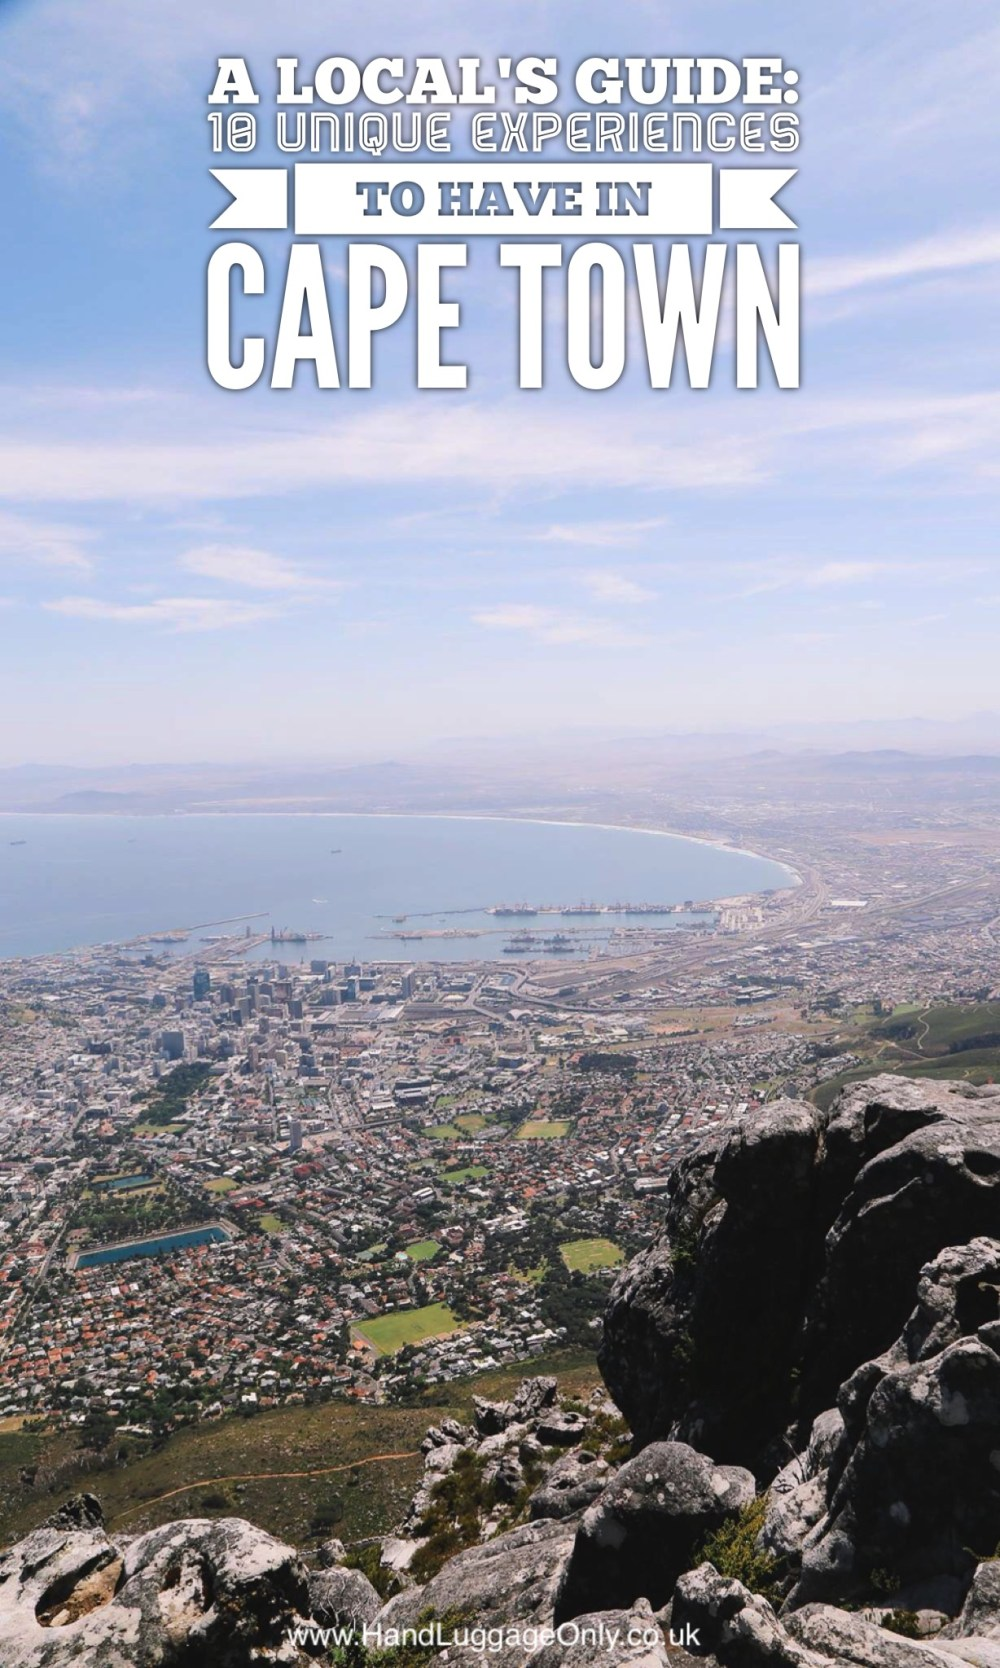 A Local's Guide: 10 Unique Experiences You Must Have In Cape Town (1)